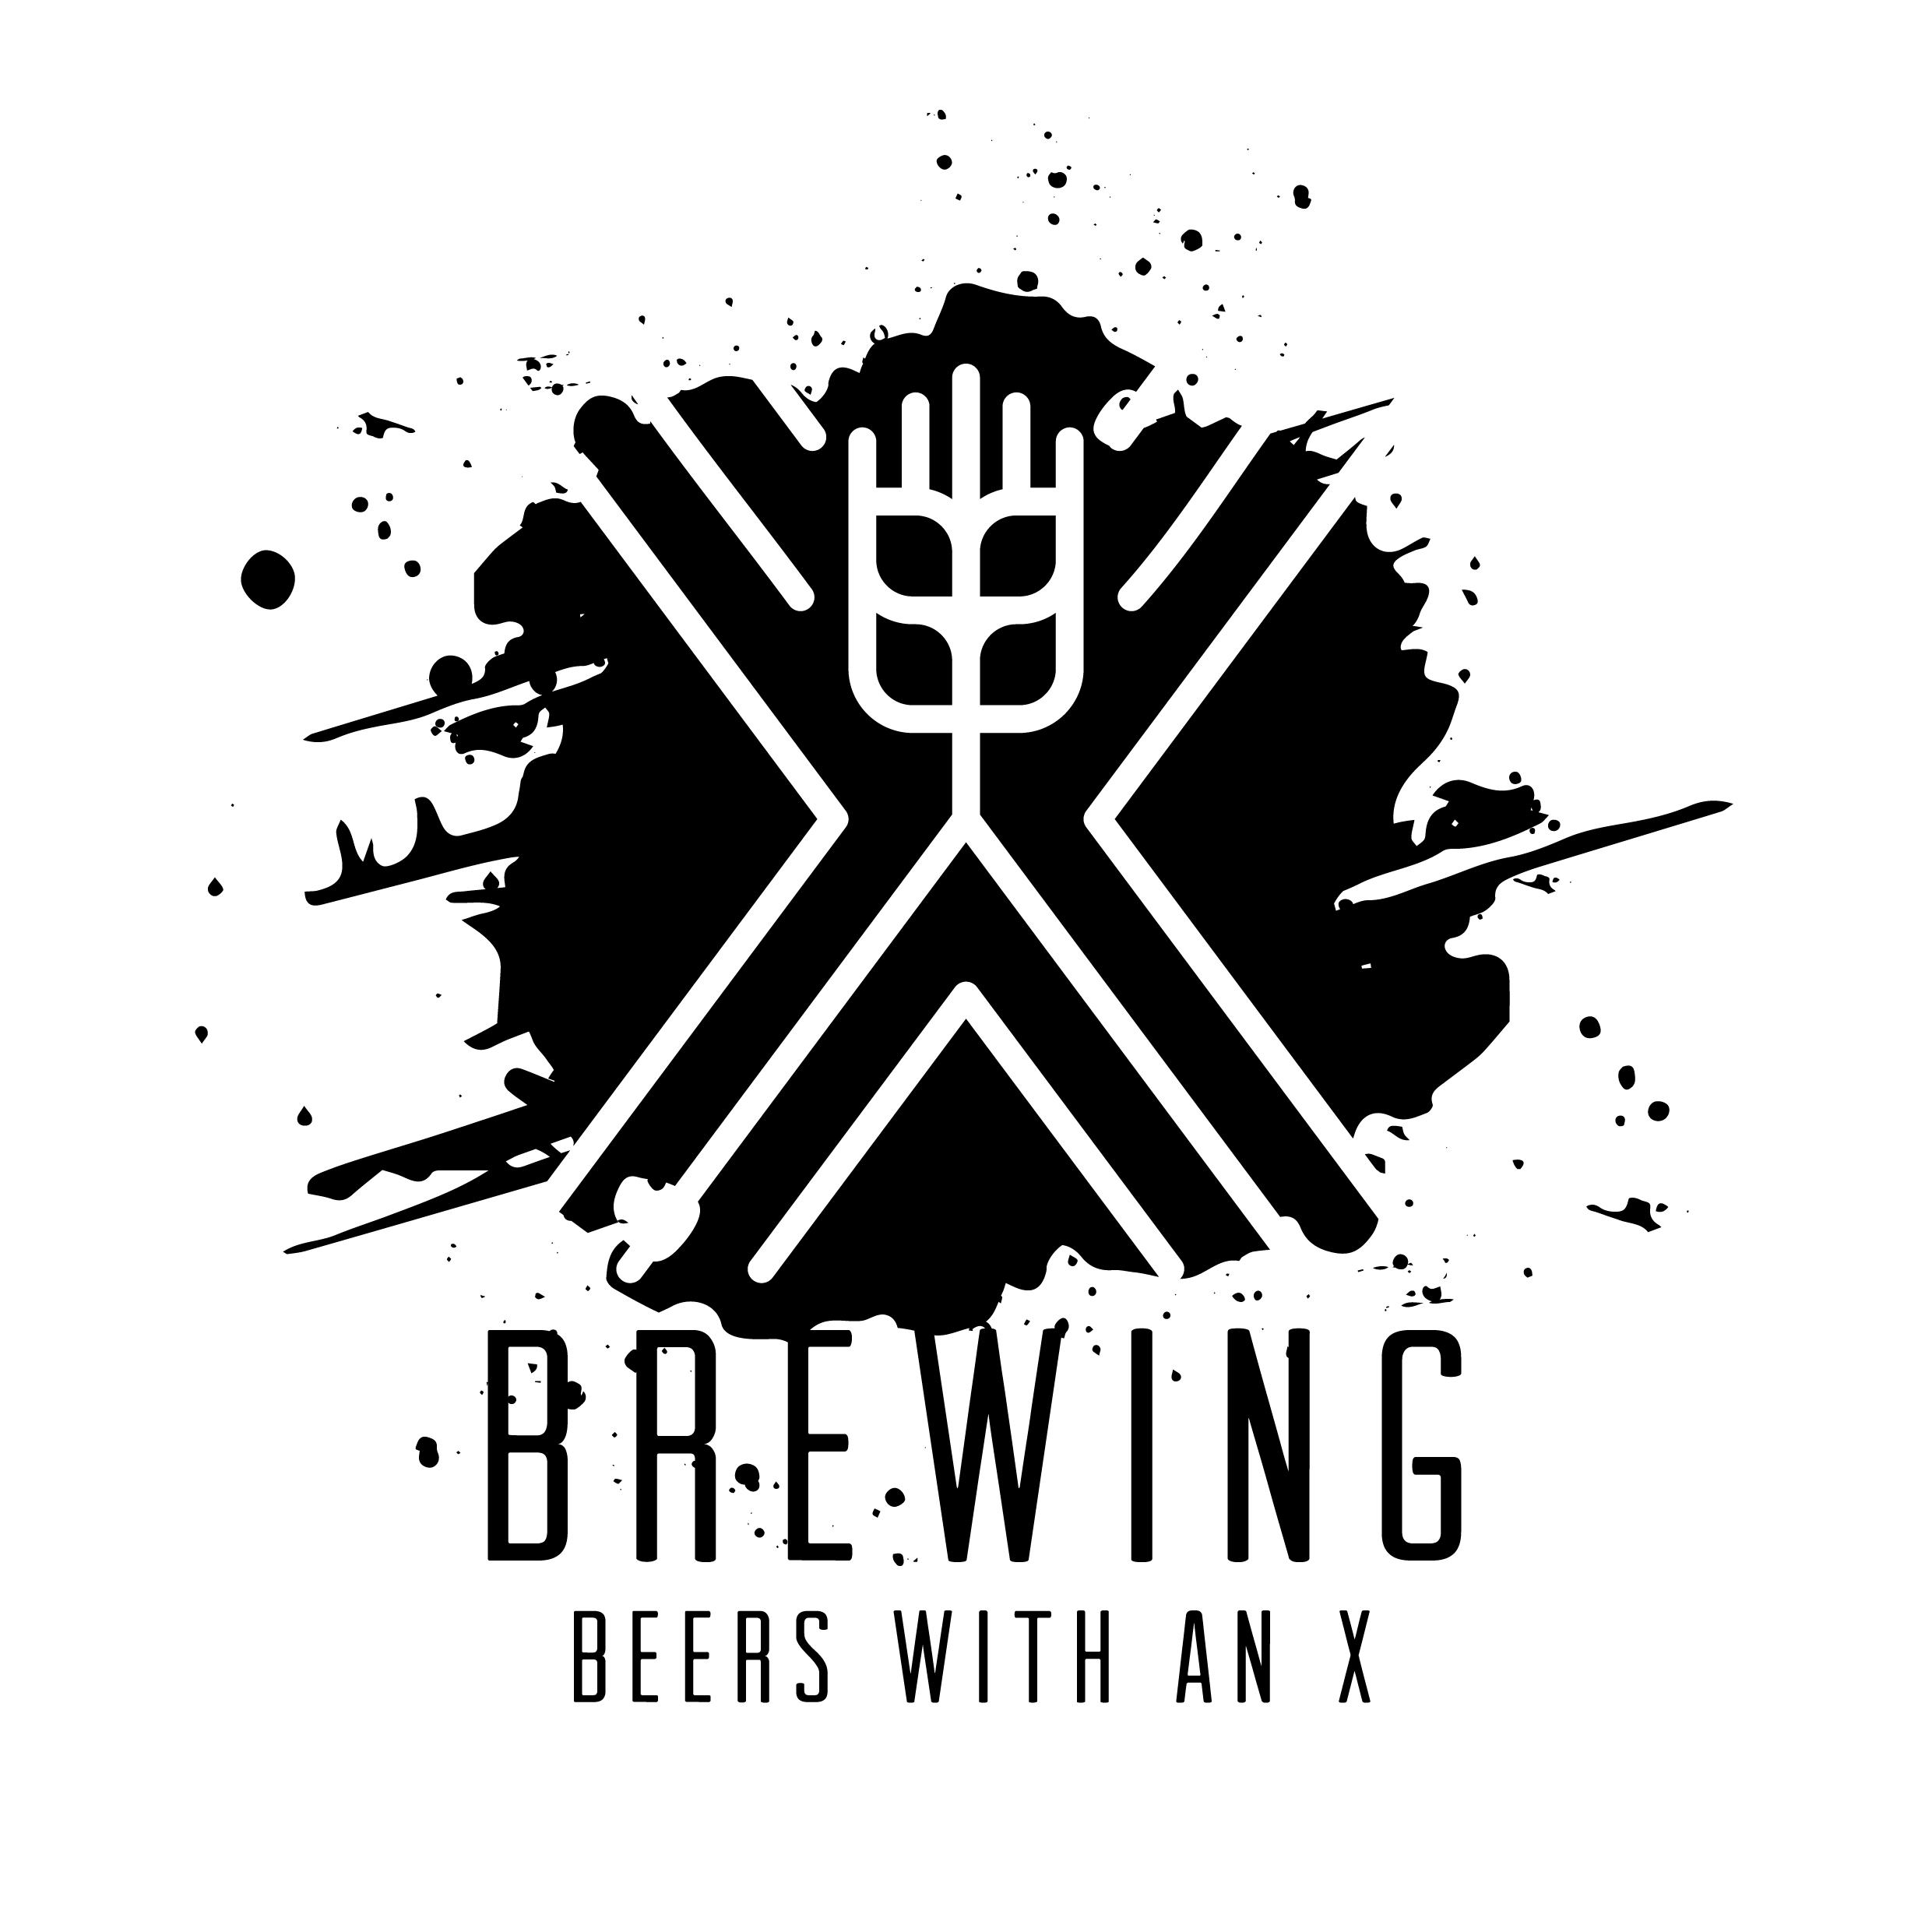 X-brewing logo